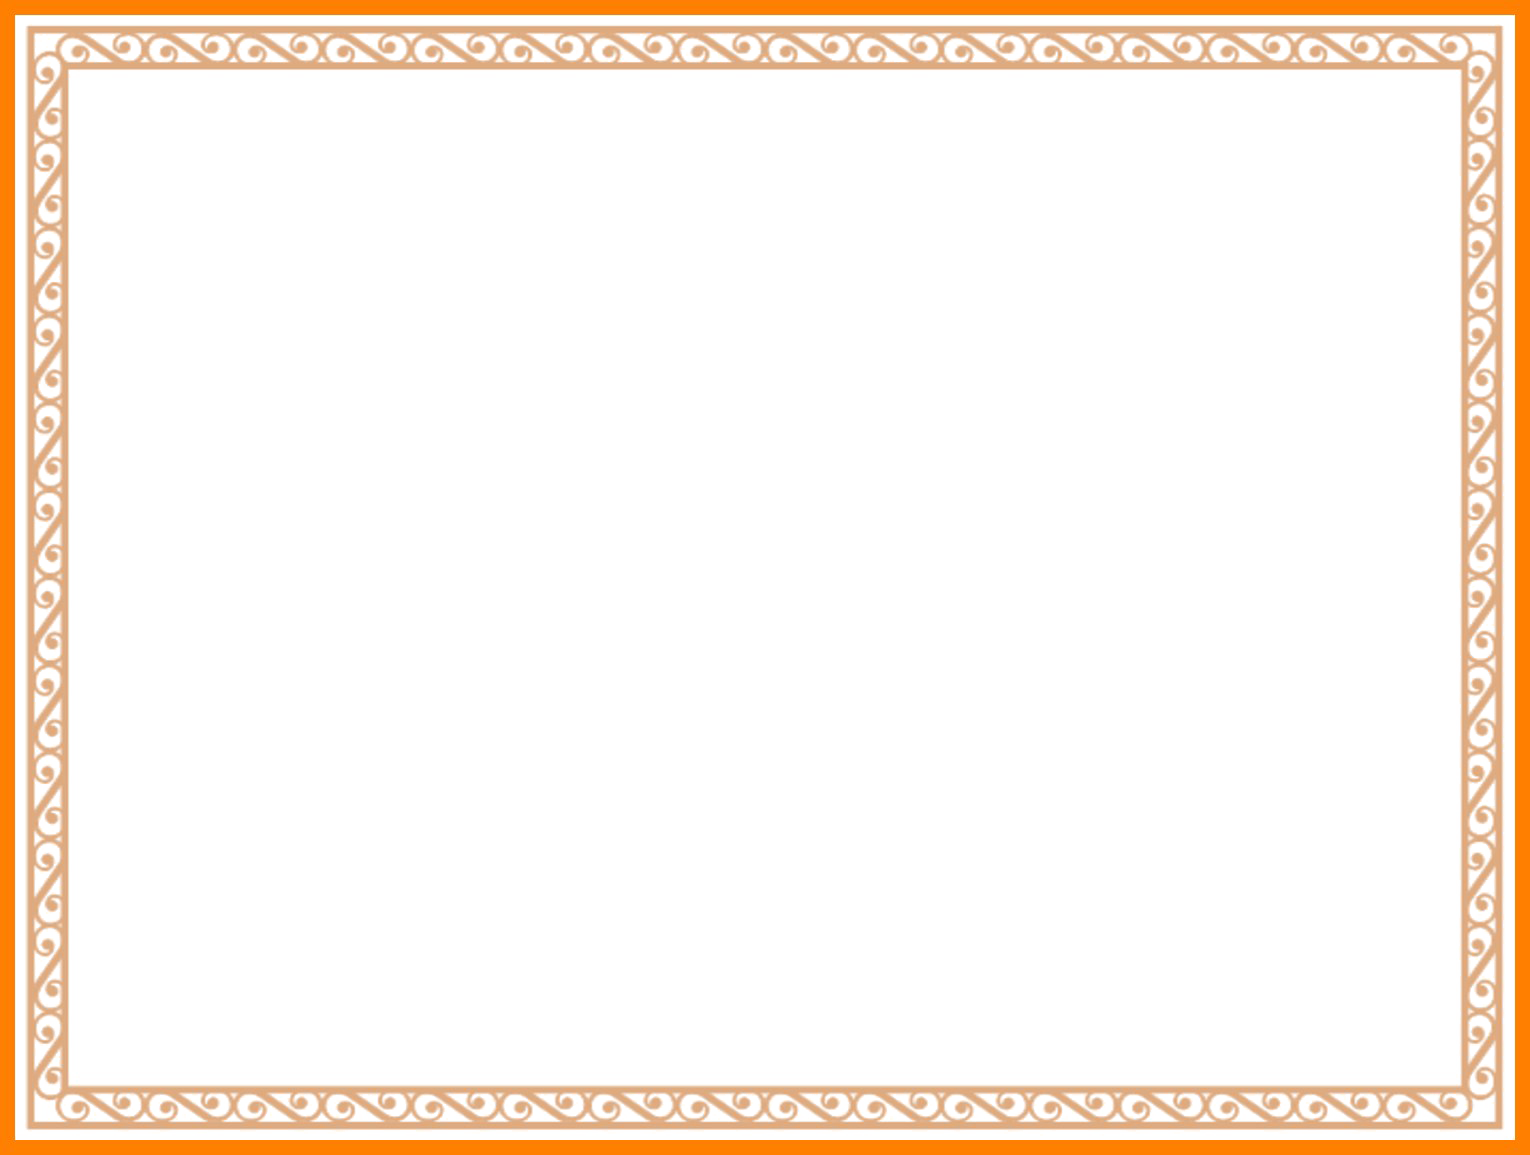 HD Border Png Free Download.